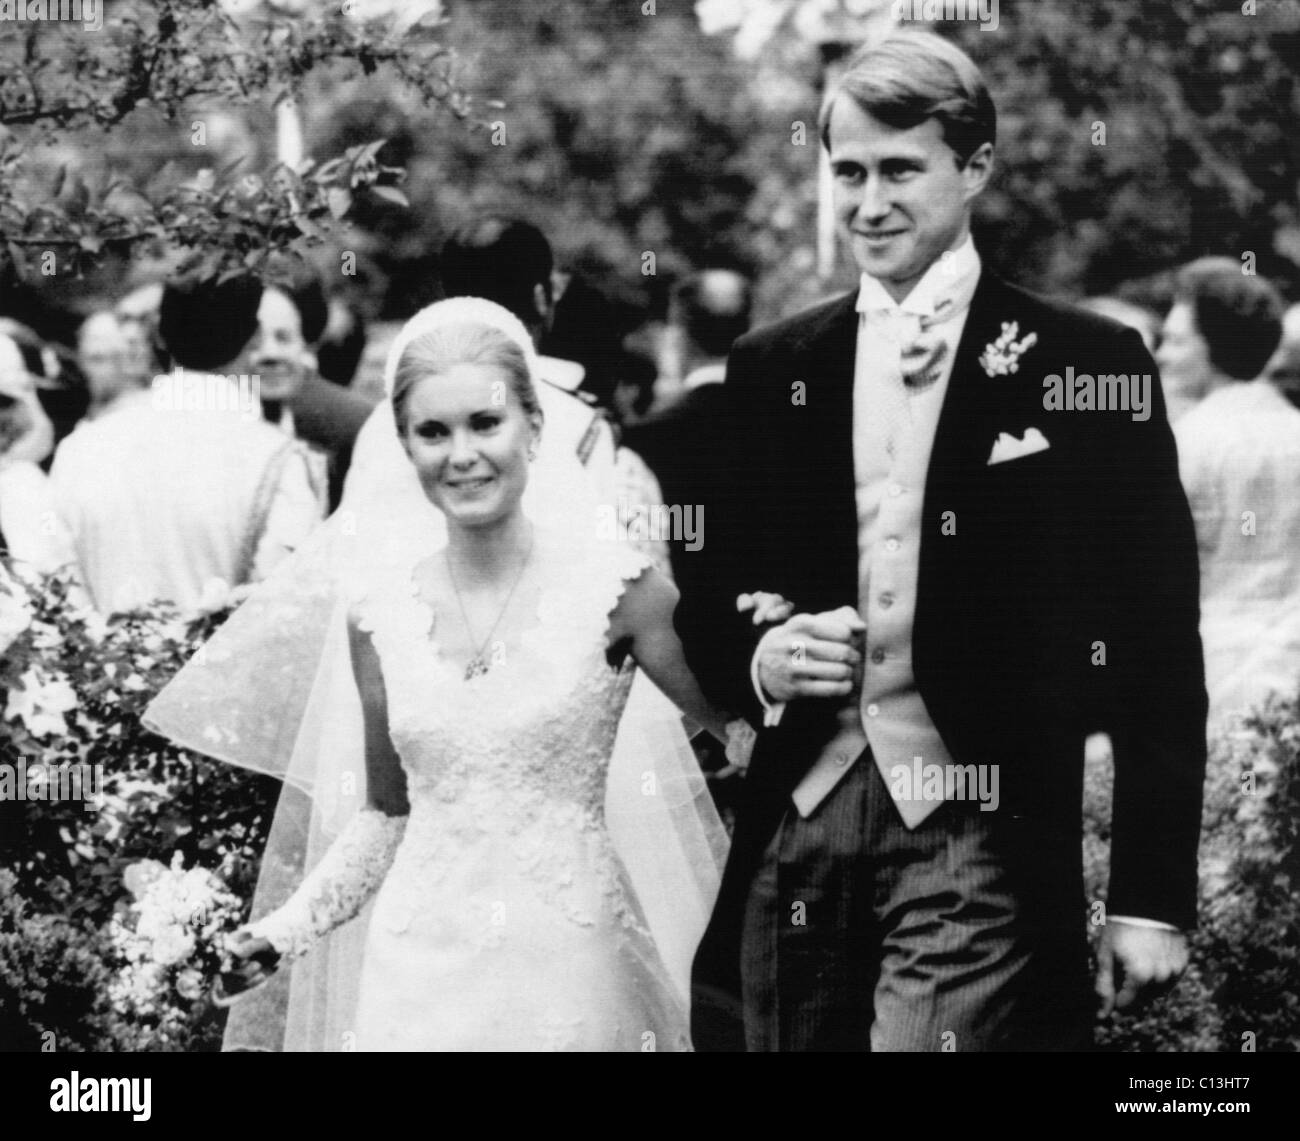 Tricia Nixon Wedding Gown: Nixon Presidency. Tricia Nixon And Edward Cox, Shortly